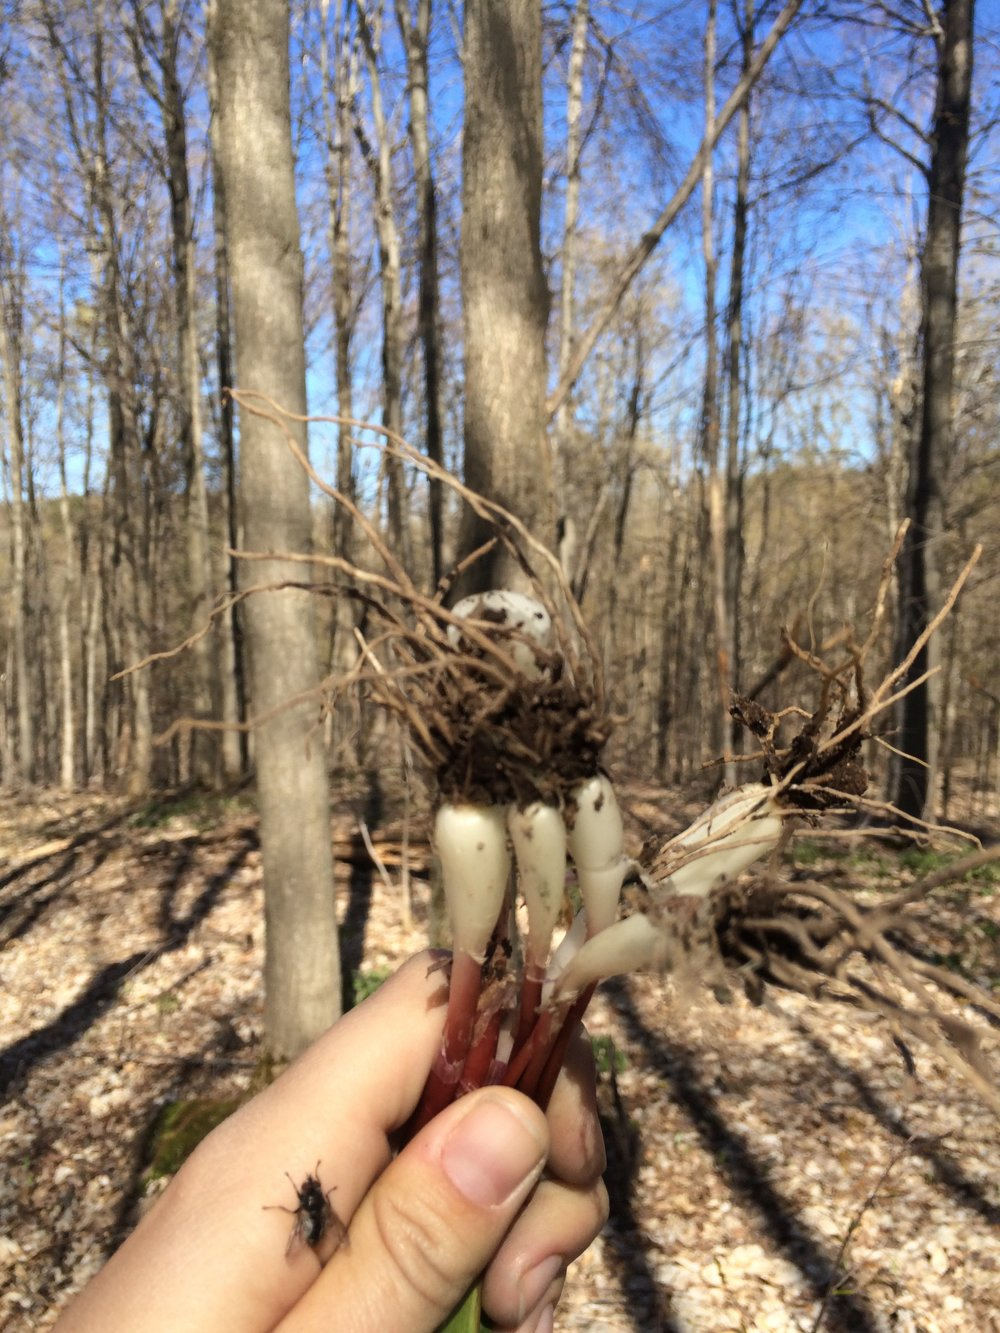 First forage from the land, thrilled to find a patch of ramps(wild leeks) in the woods.